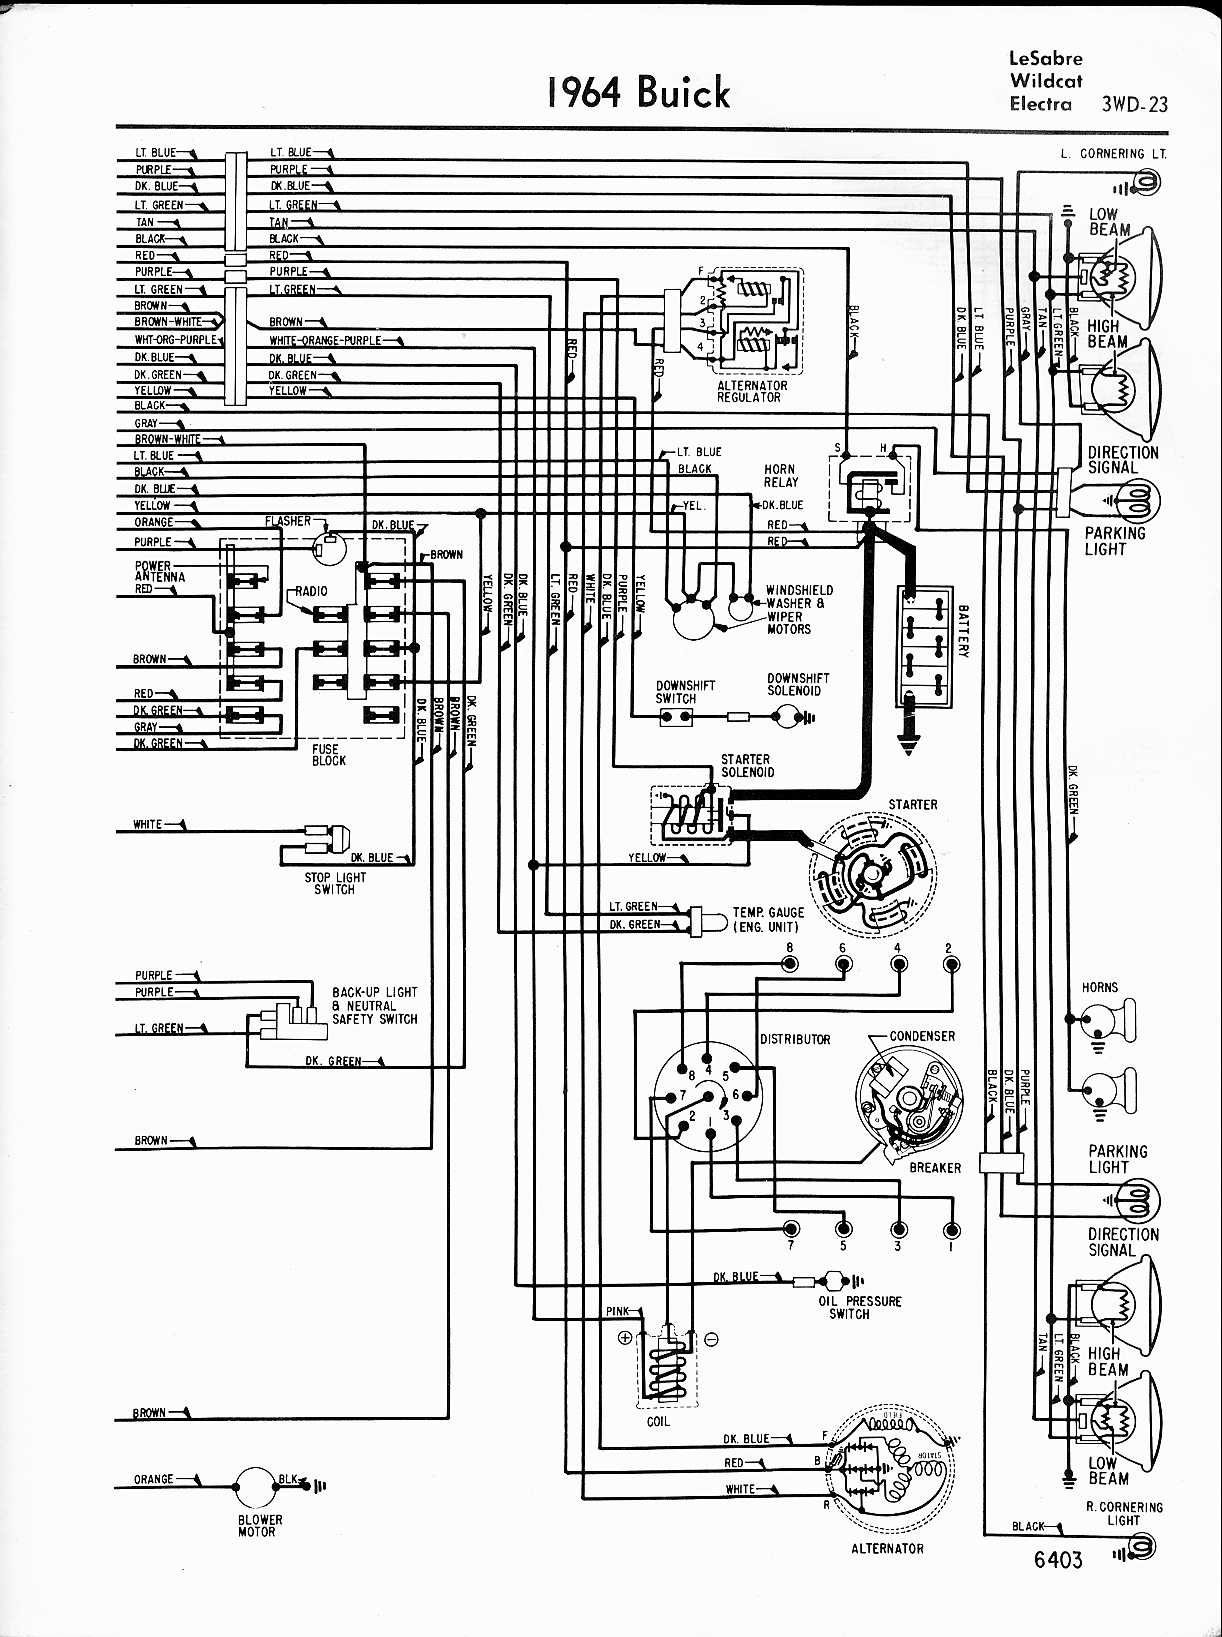 Mwirebuic Wd on 2002 Buick Century Wiring Diagram